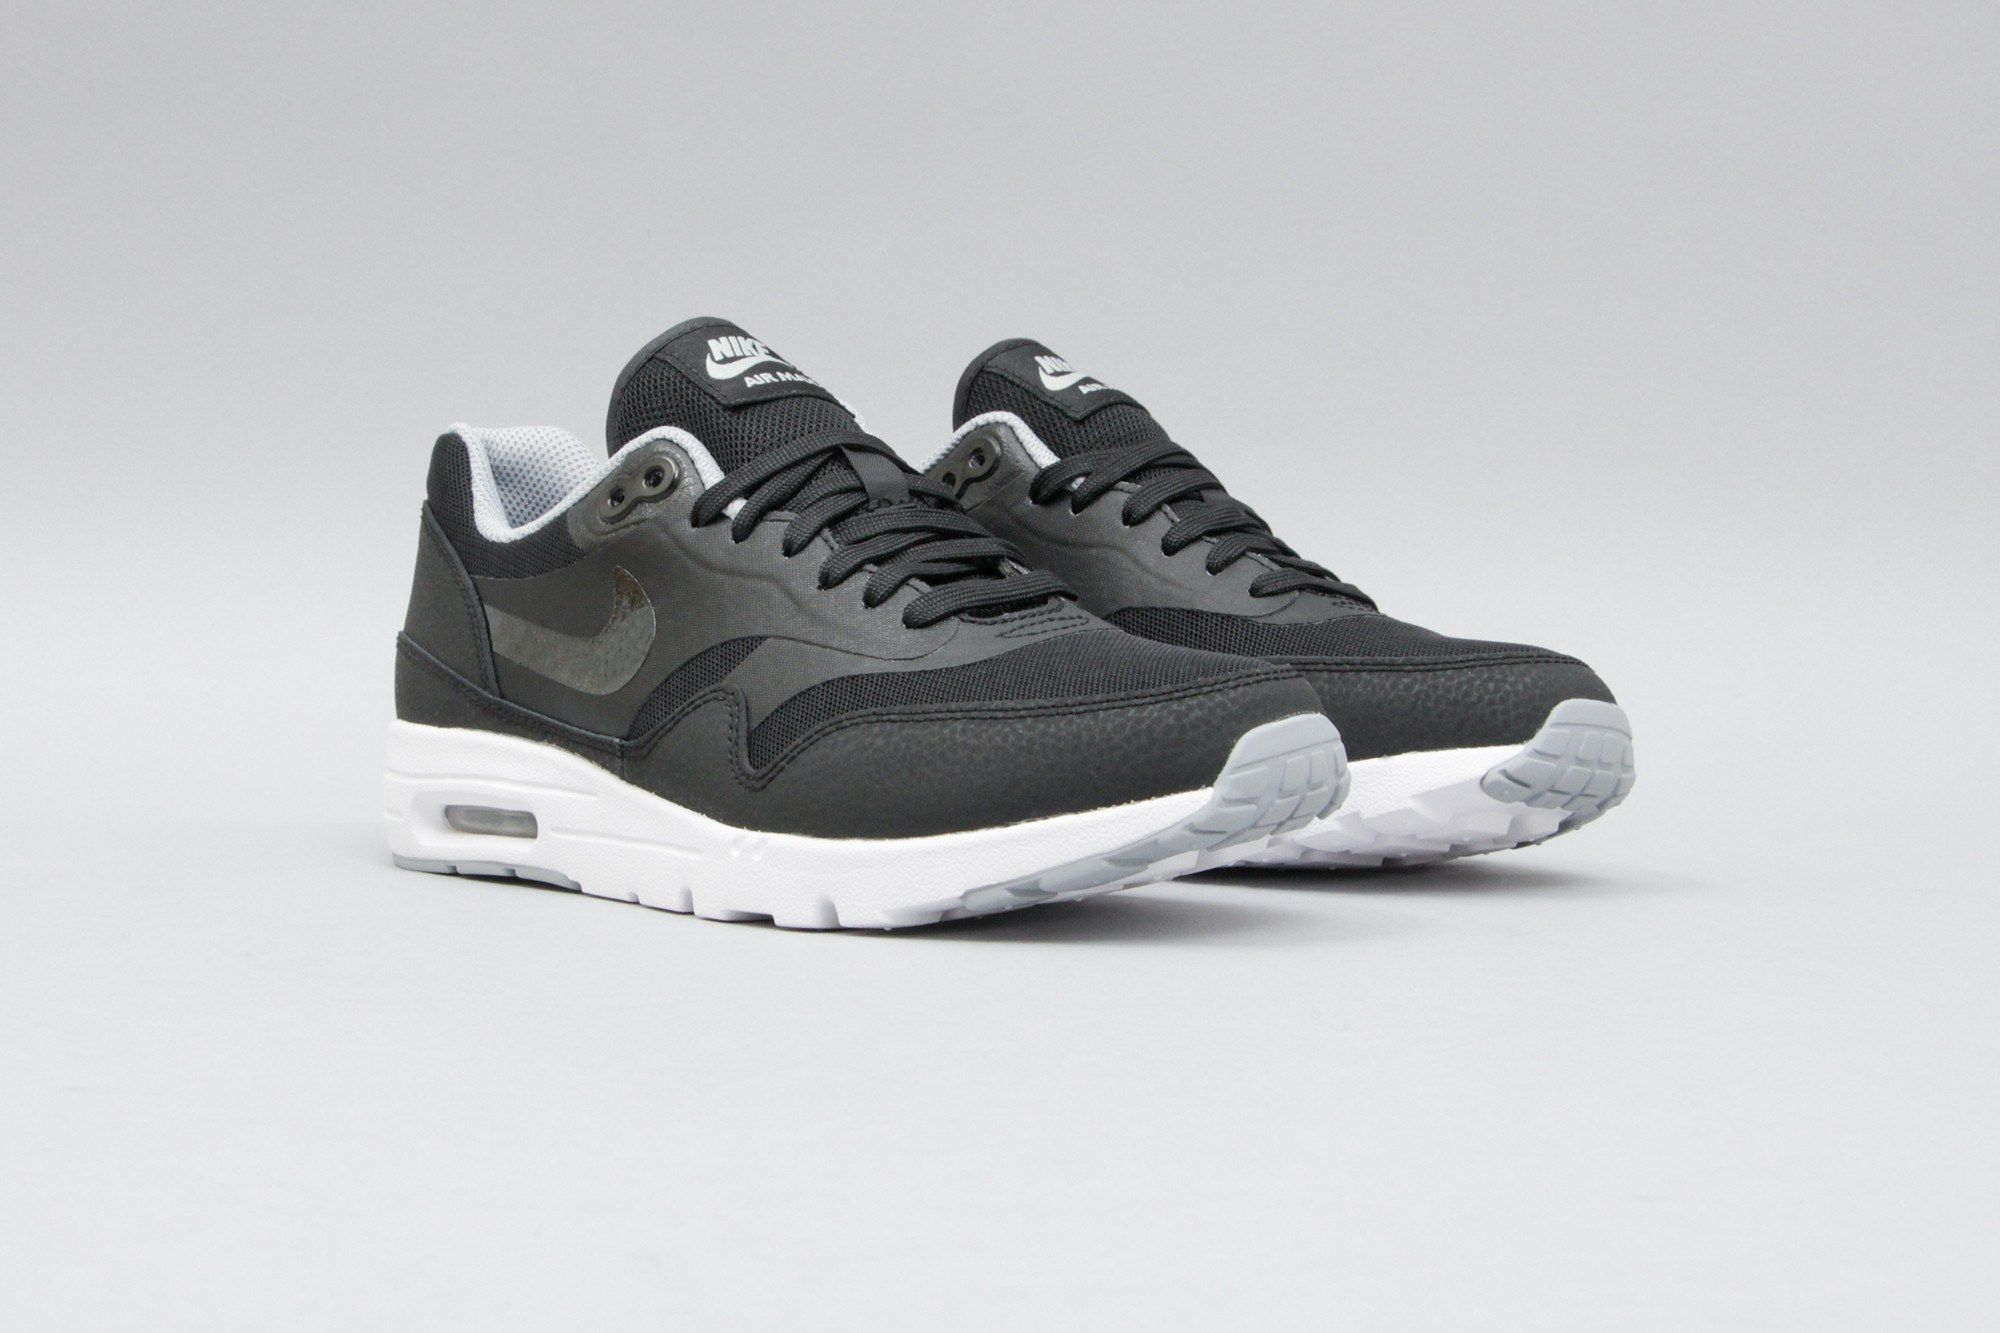 Nike WMNS Air Max 1 Ultra Essential Black / Grey 704993 004 (Schwarz/Grau